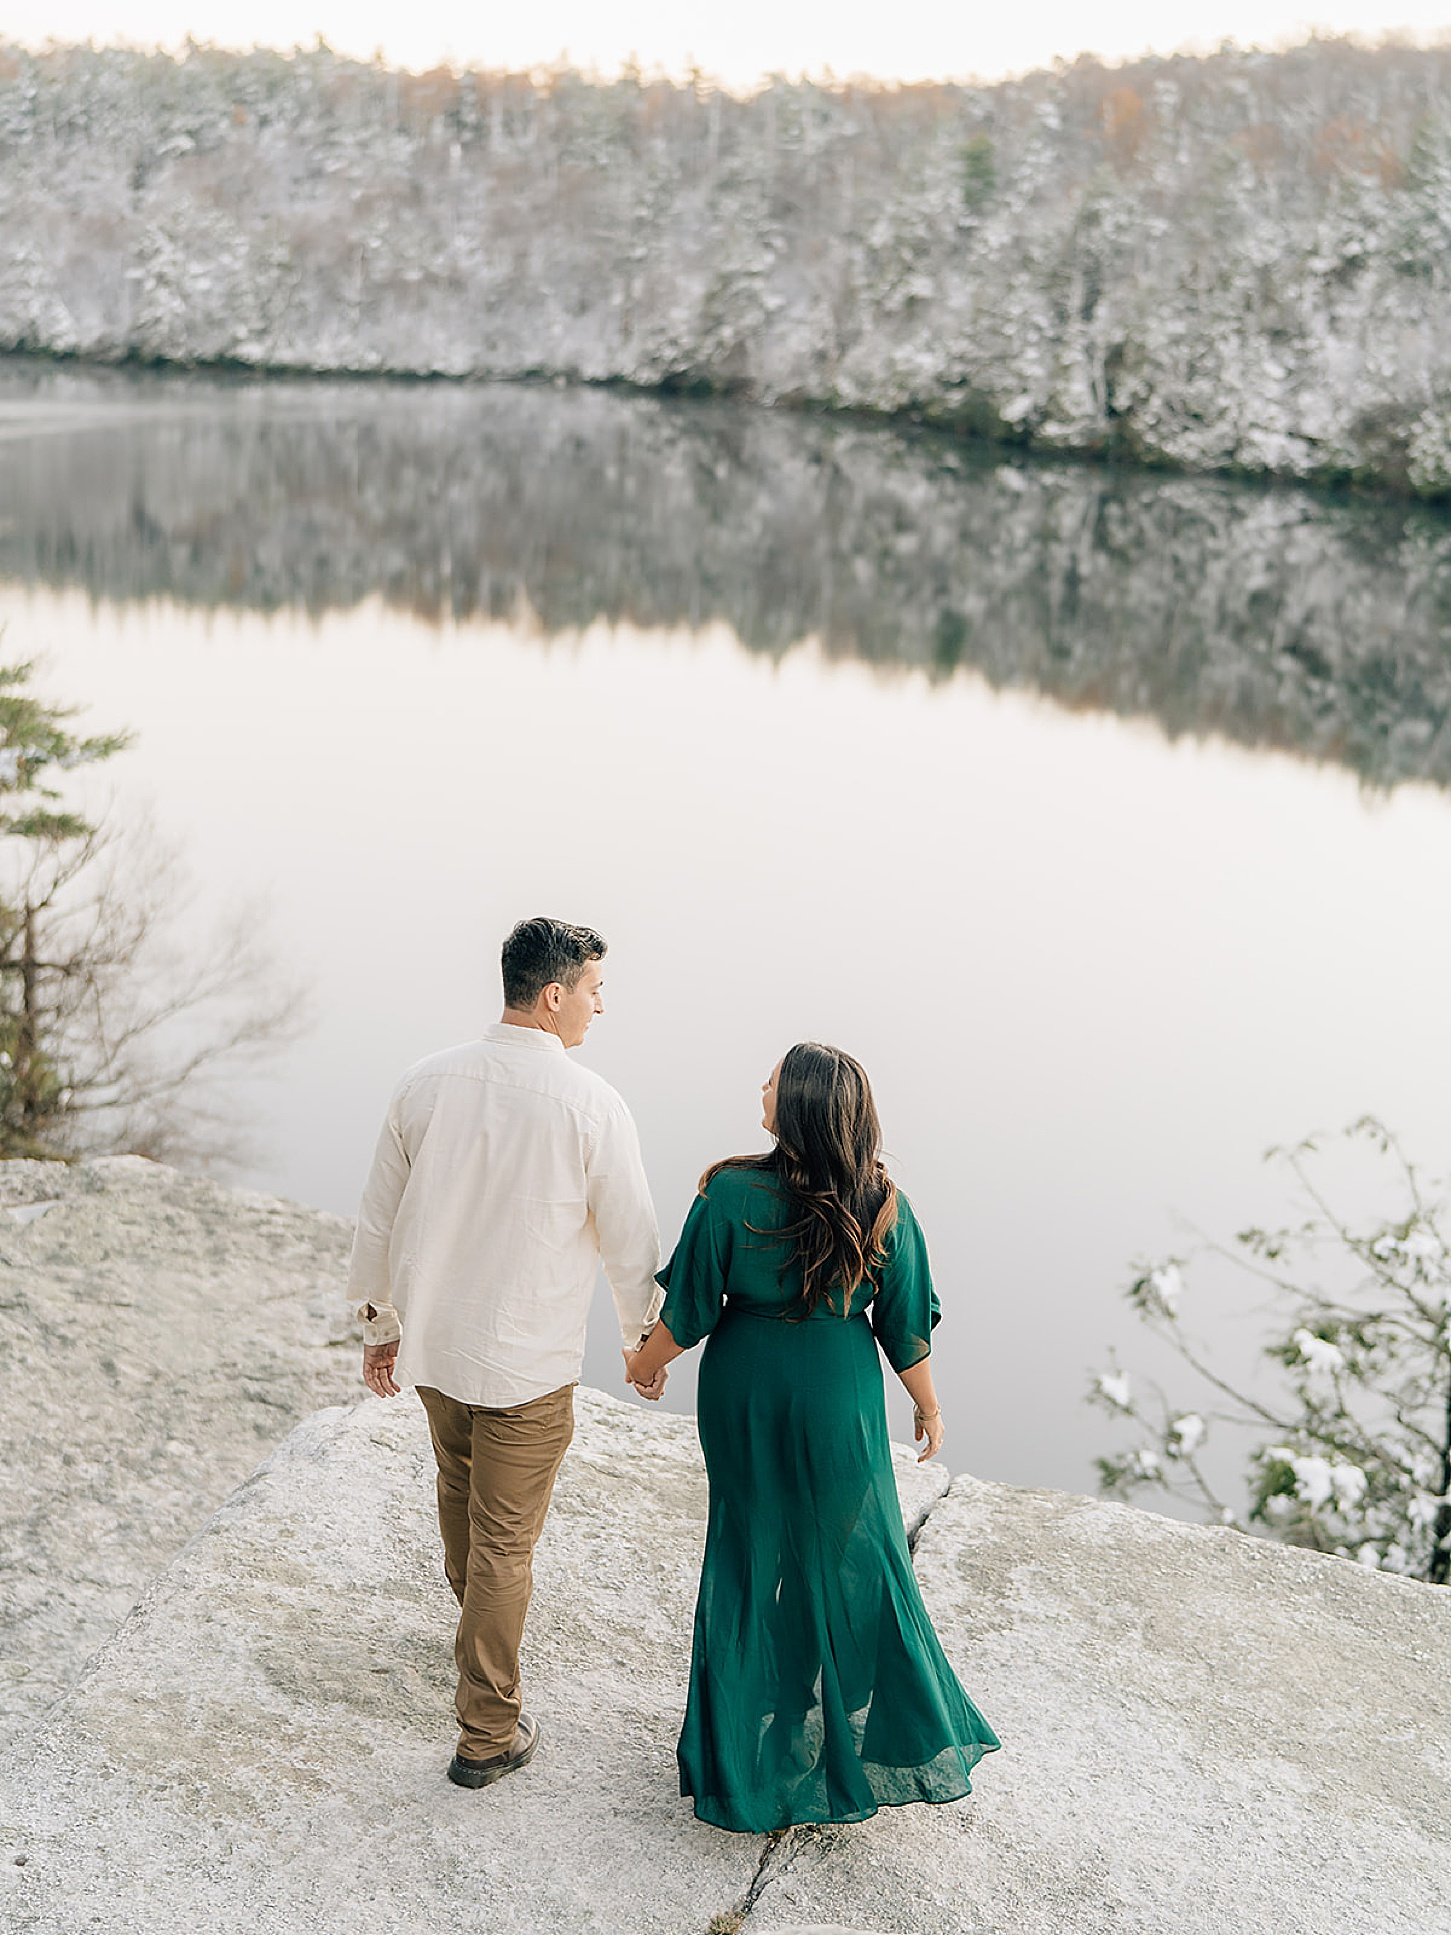 Vermont Destination Engagement Photography by Magdalena Studios 0021